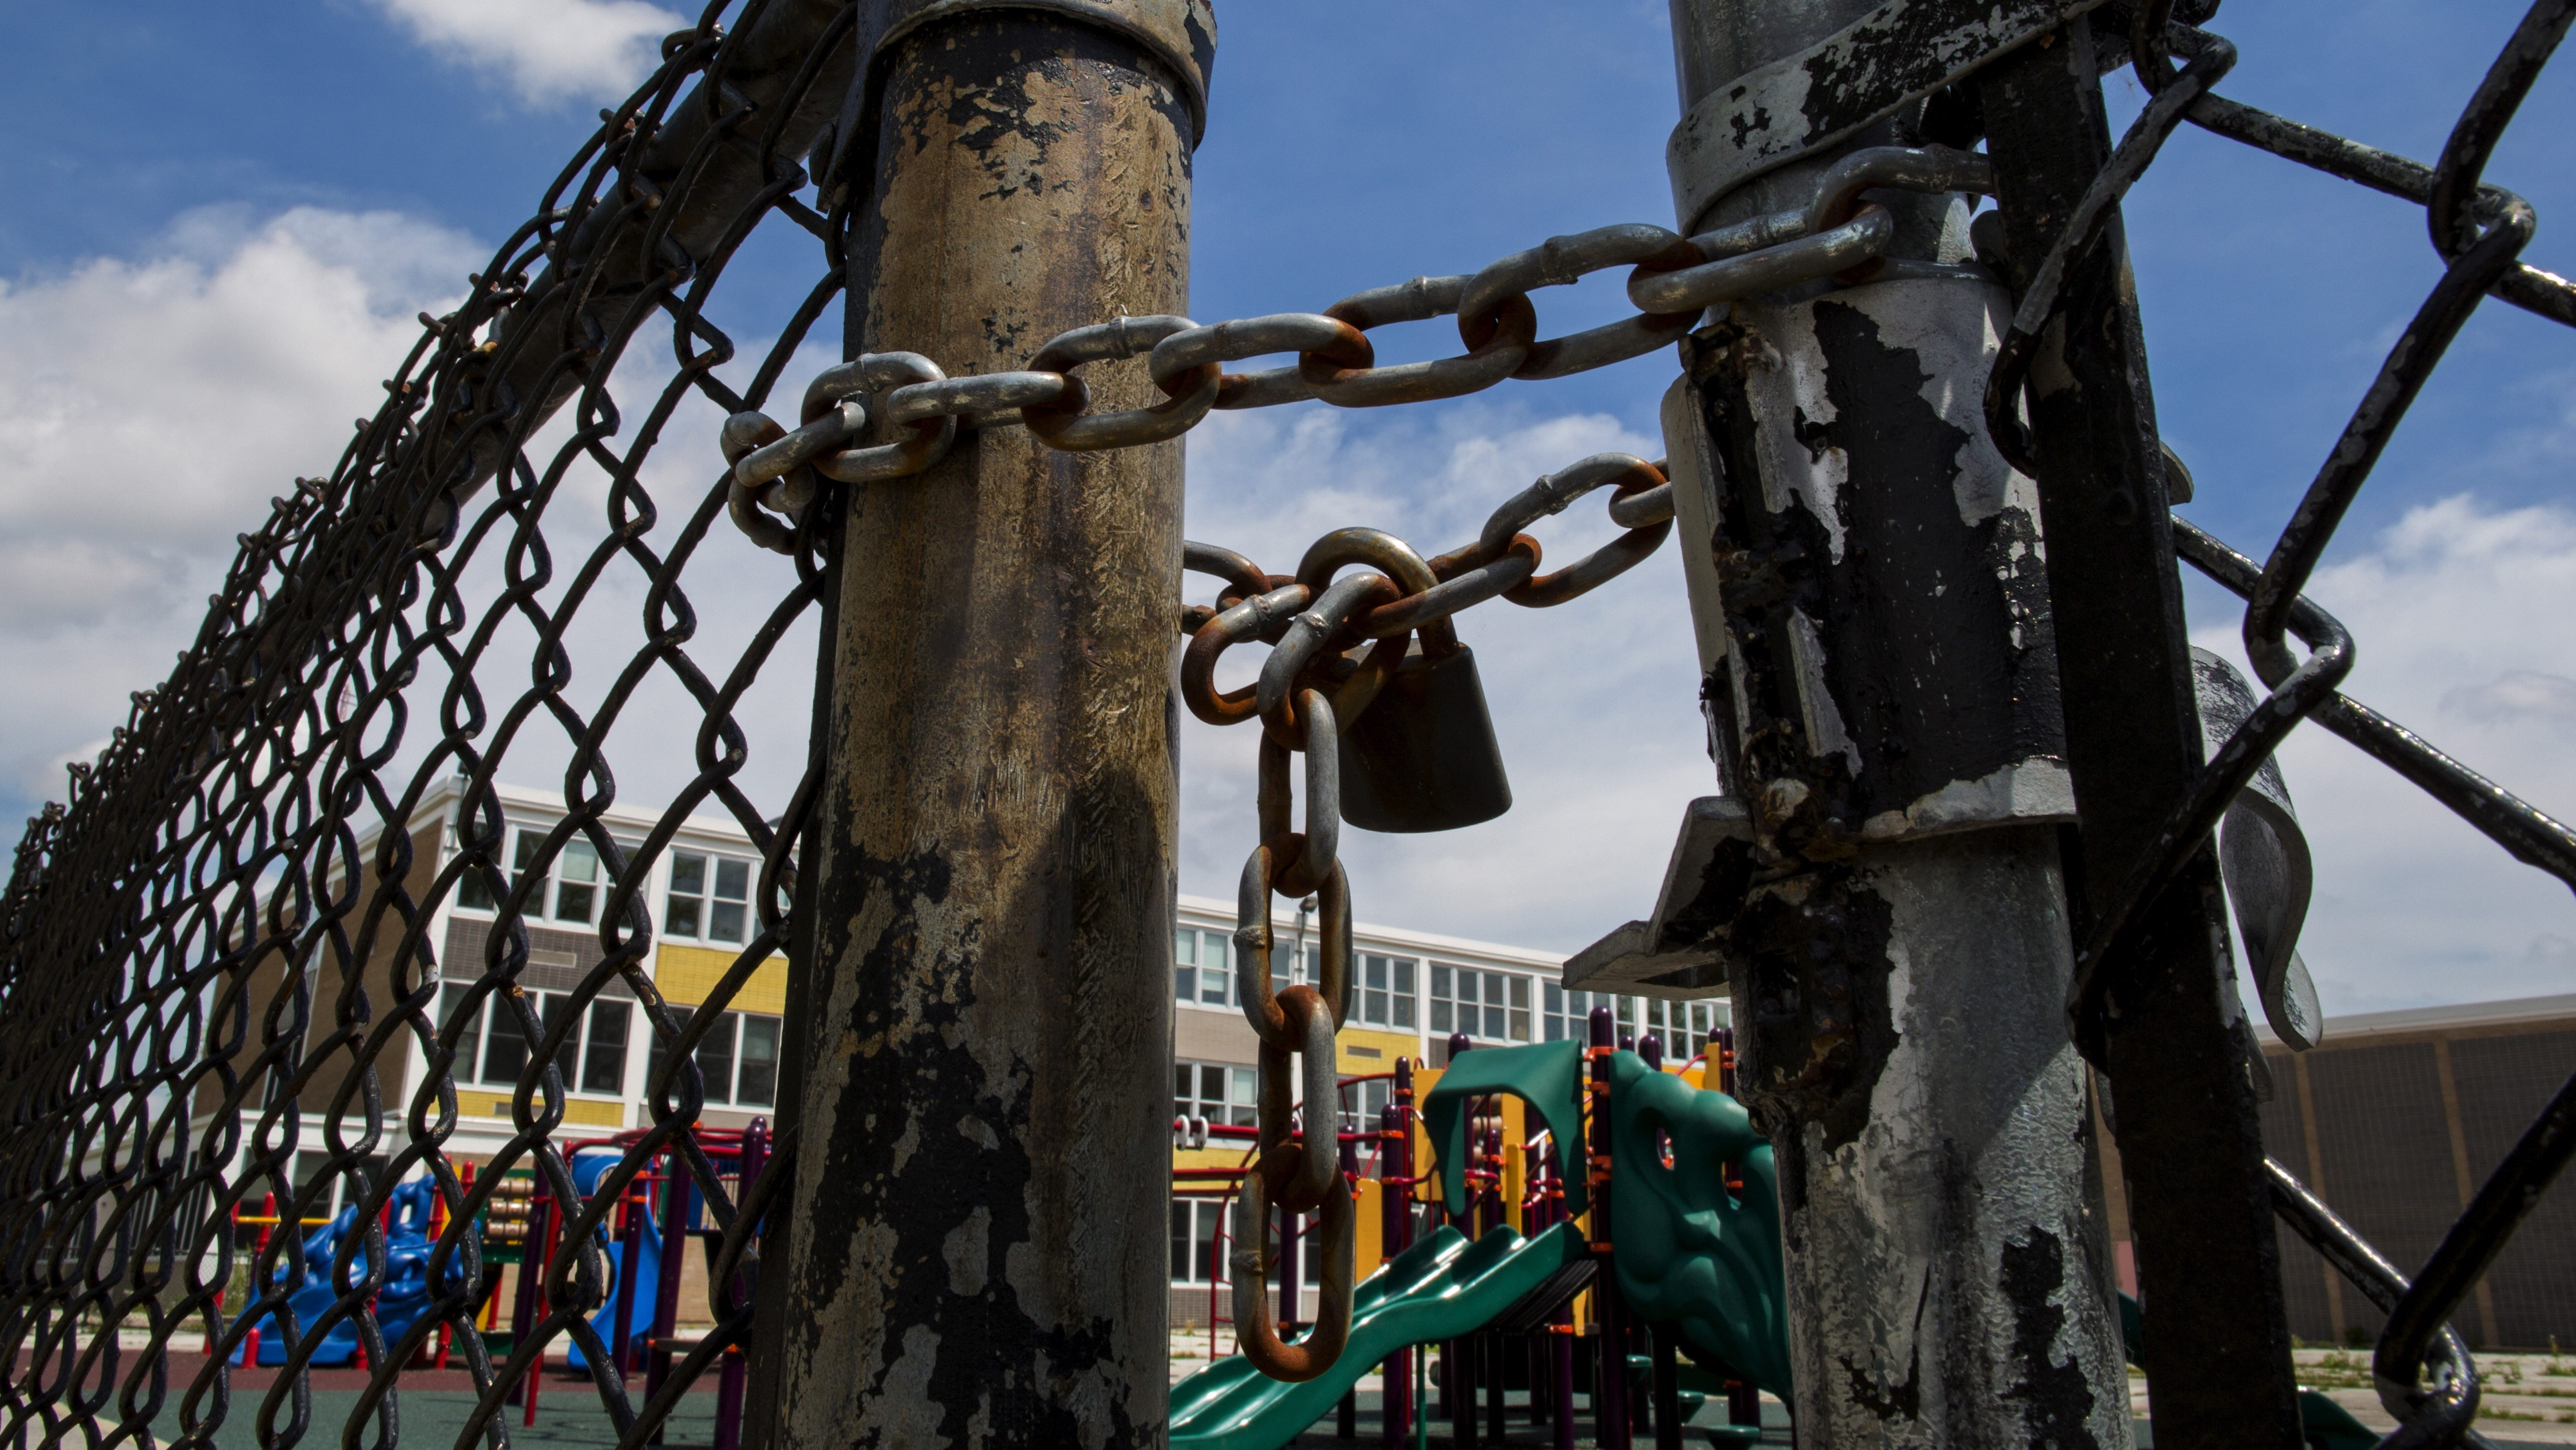 A playground is seen behind a locked gate at Woods Elementary Math & Science Academy in Chicago, Illinois, United States, May 8, 2015.